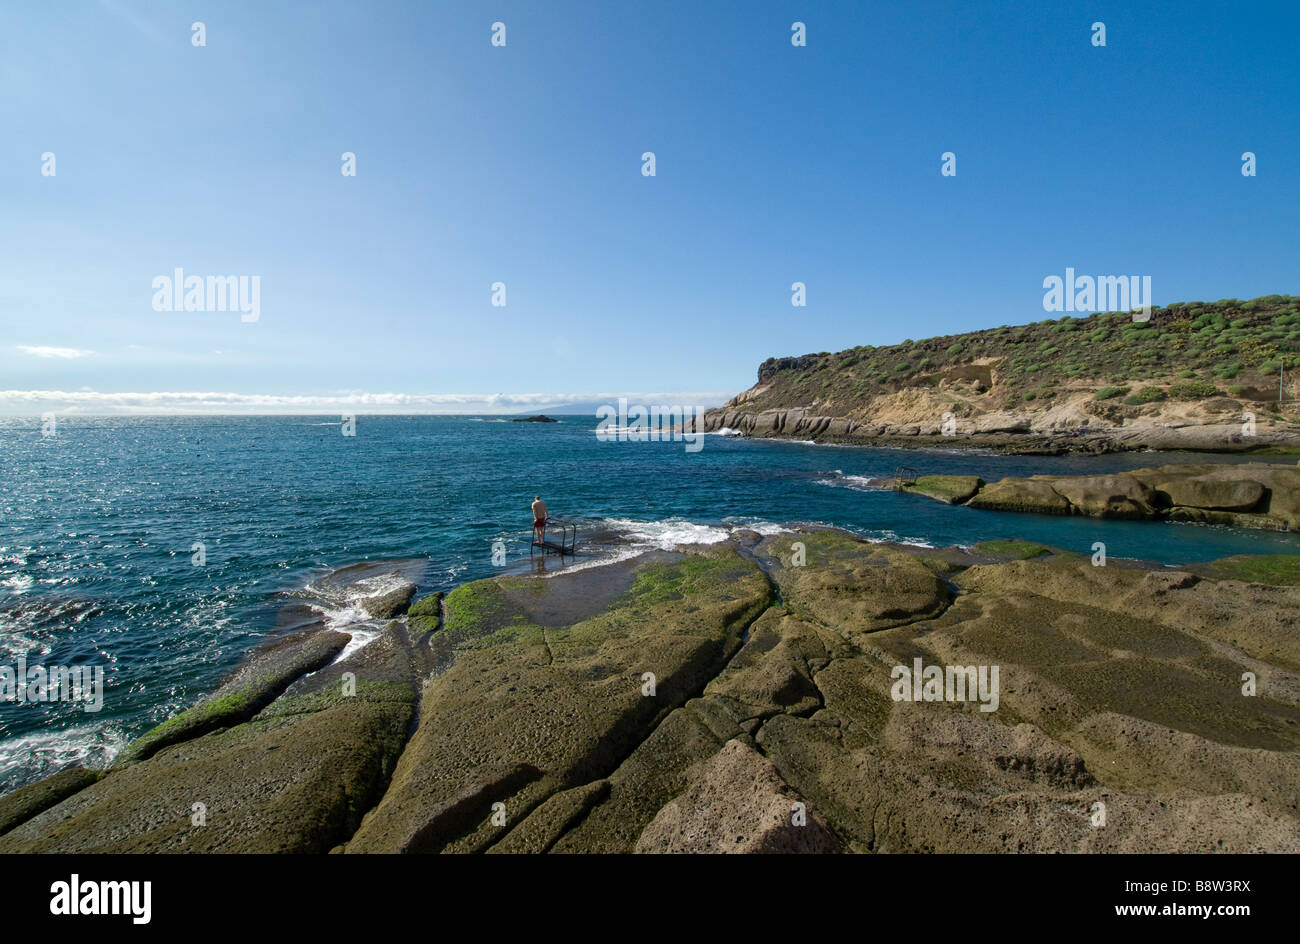 Lone bather standing on diving board looking out to sea at La Caleta Tenerife Canary Islands Spain - Stock Image